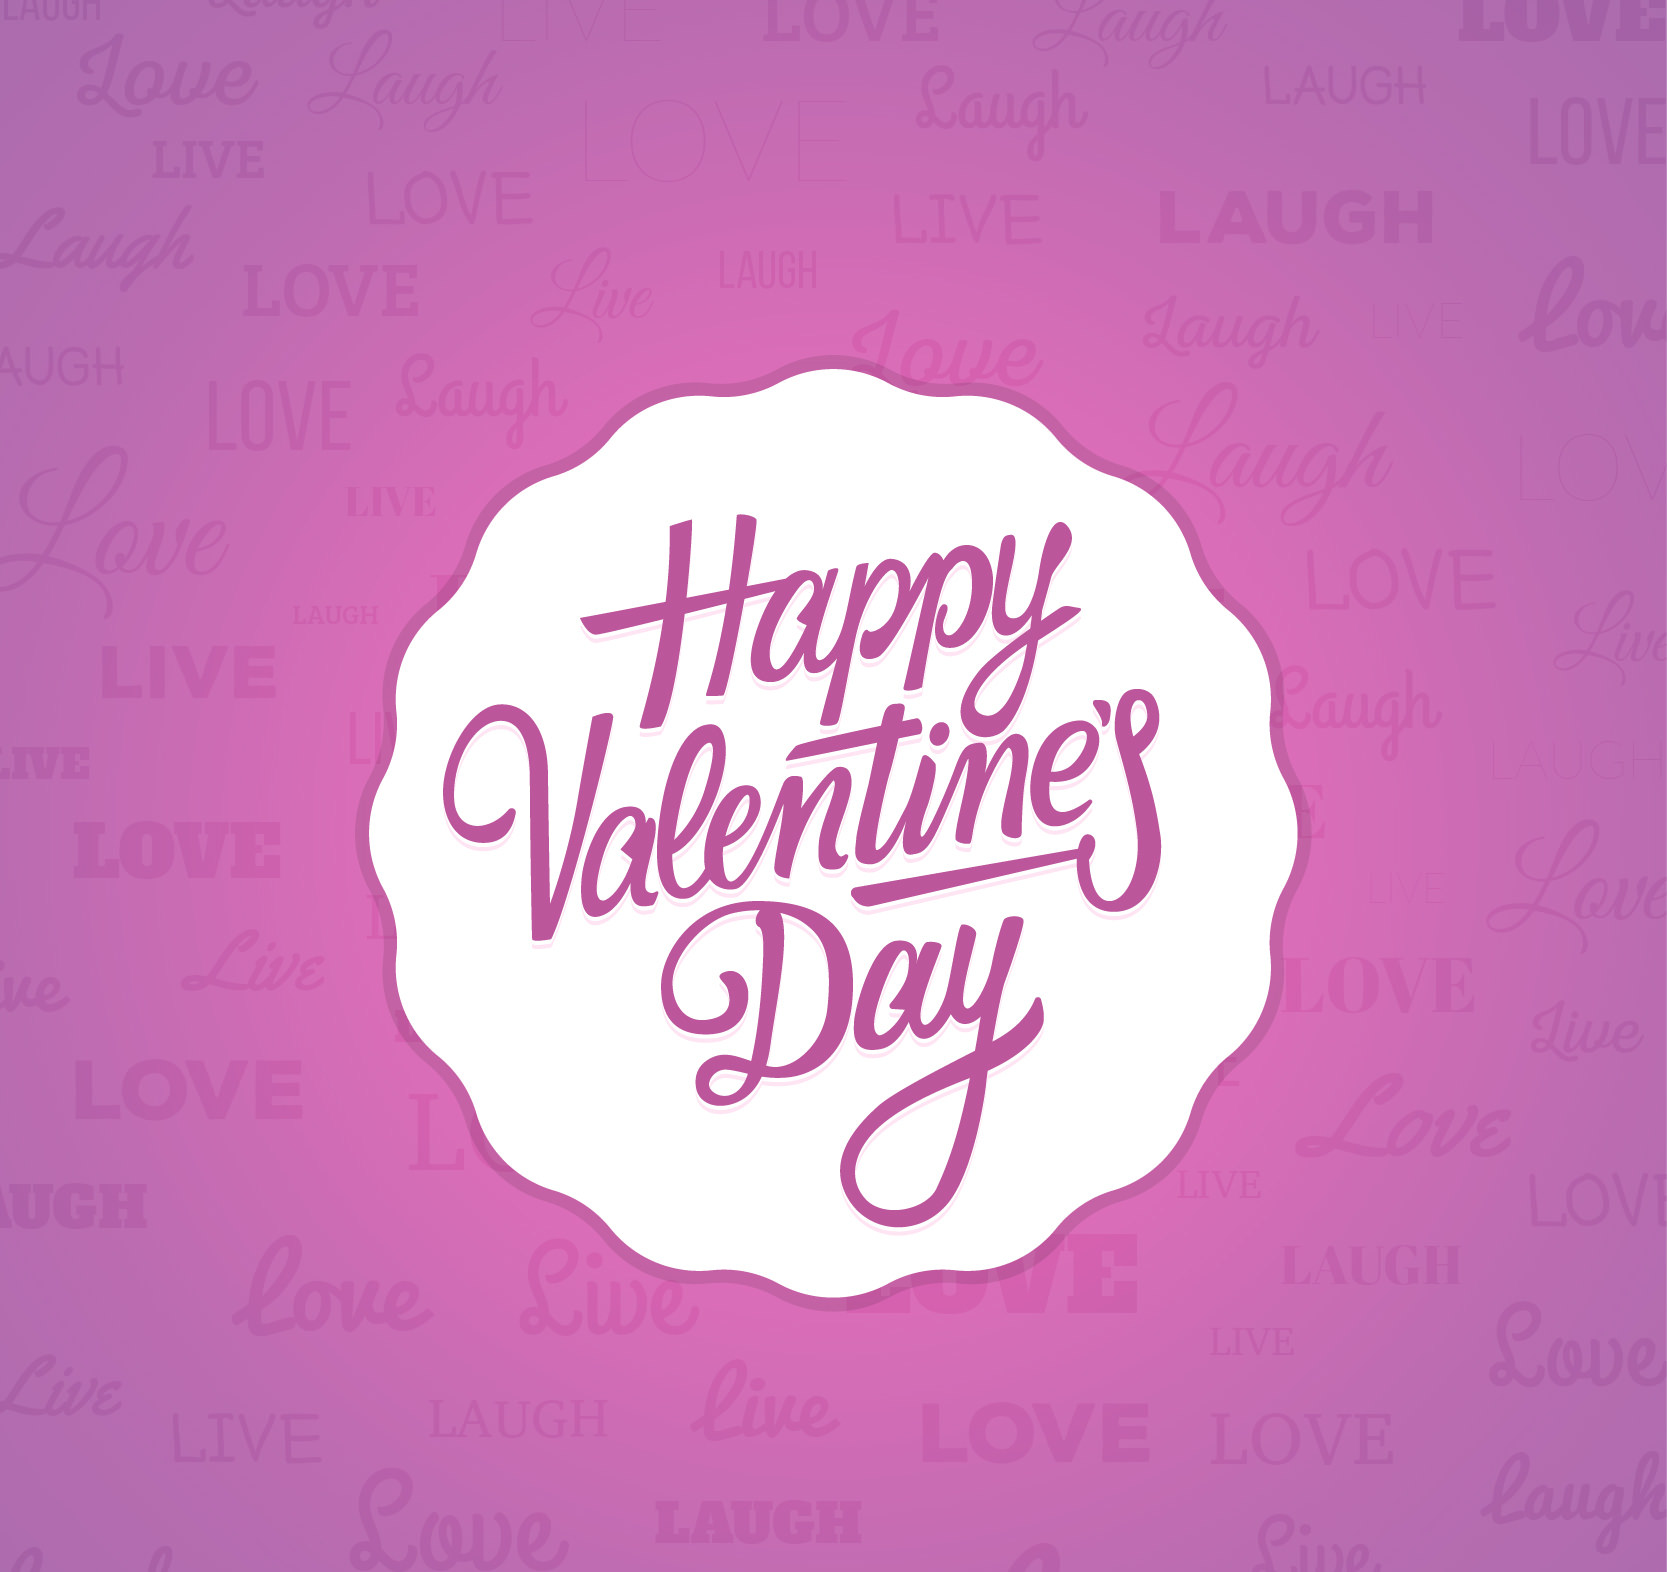 Happy Valentine's Day Badge on Pink background